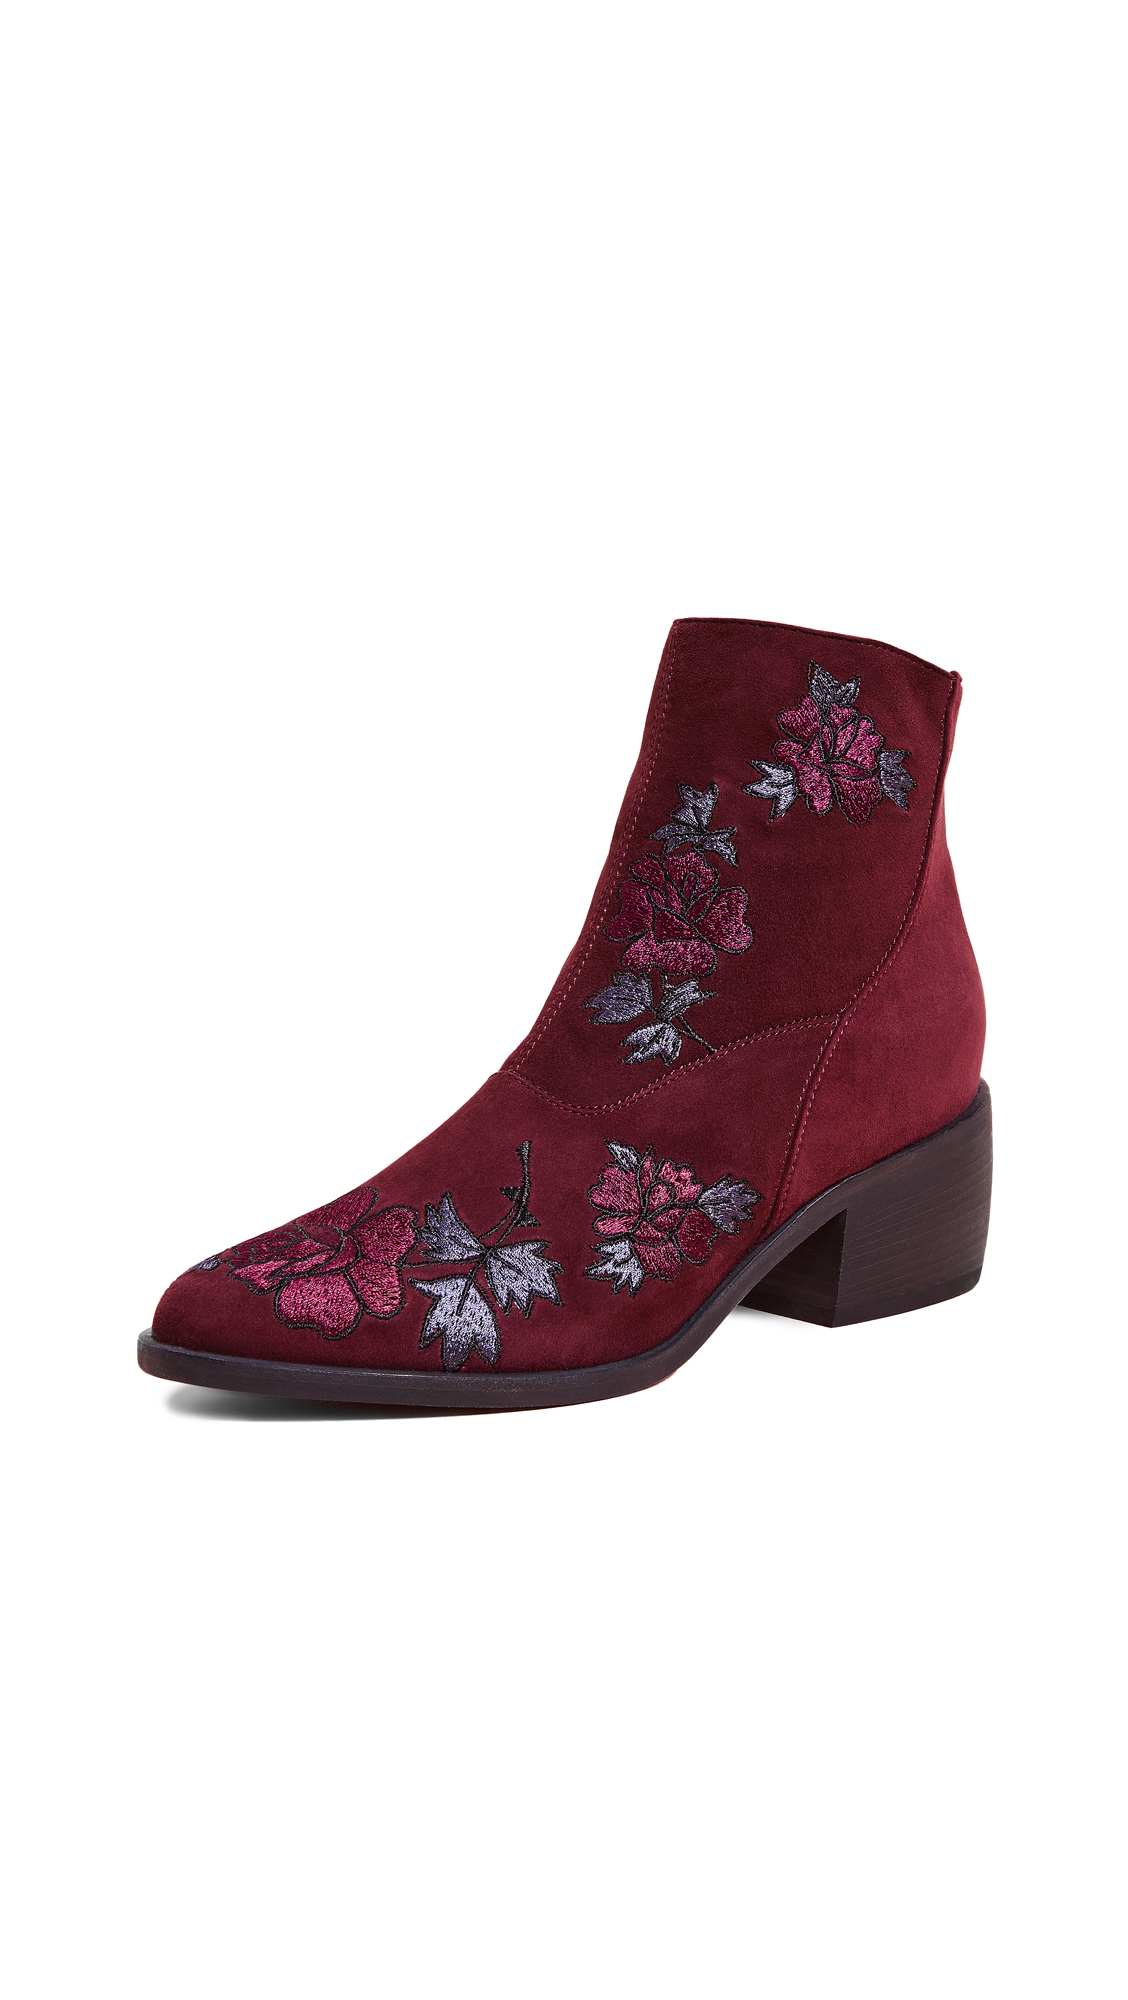 LD TUTTLE The Door Floral Booties in Stain